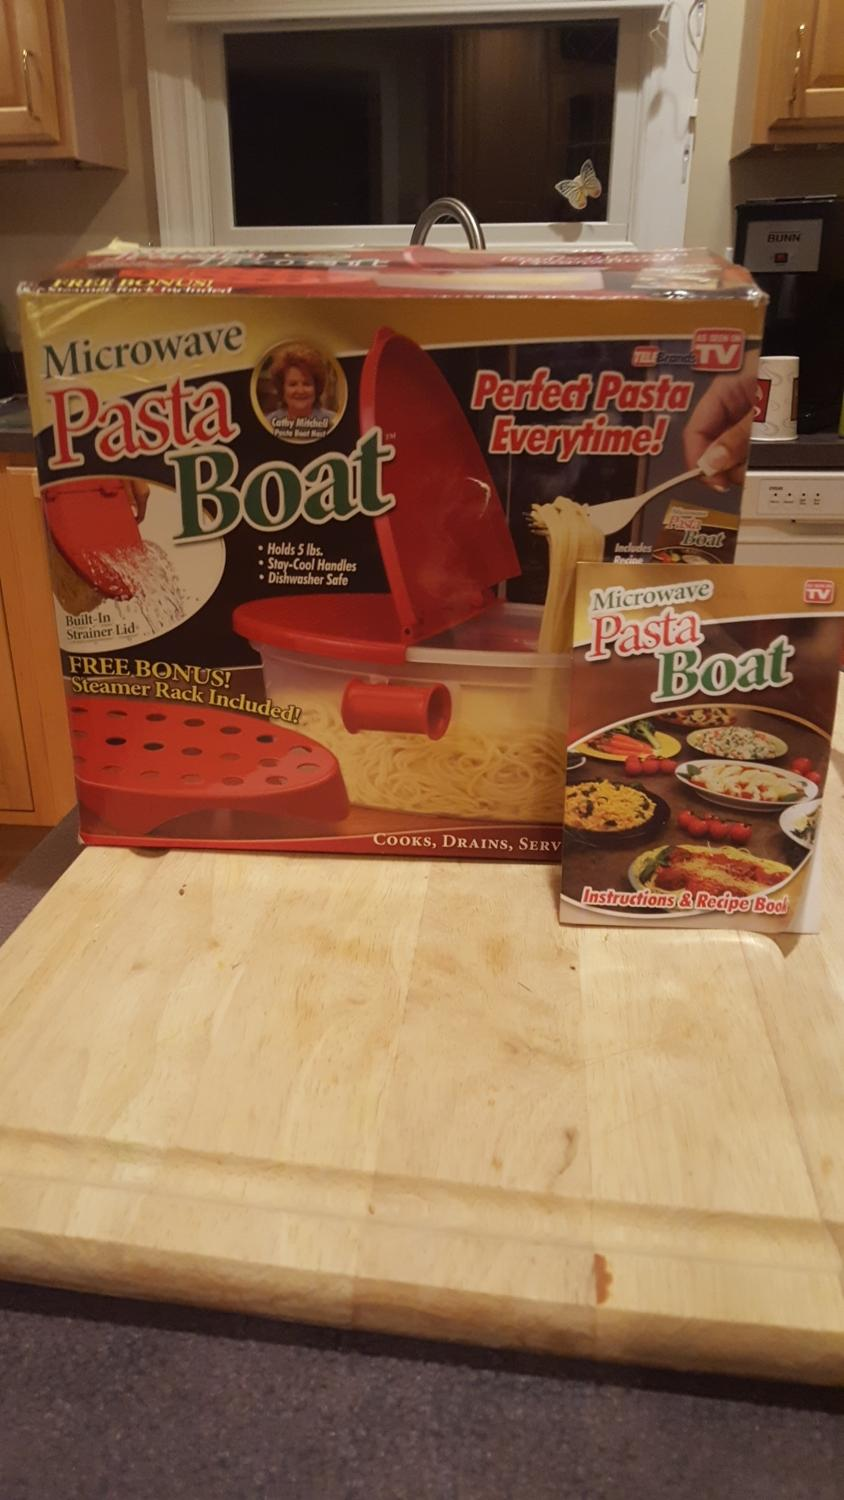 Find More Pasta Boat Perfect Pasta Every Time In Your Microwave For